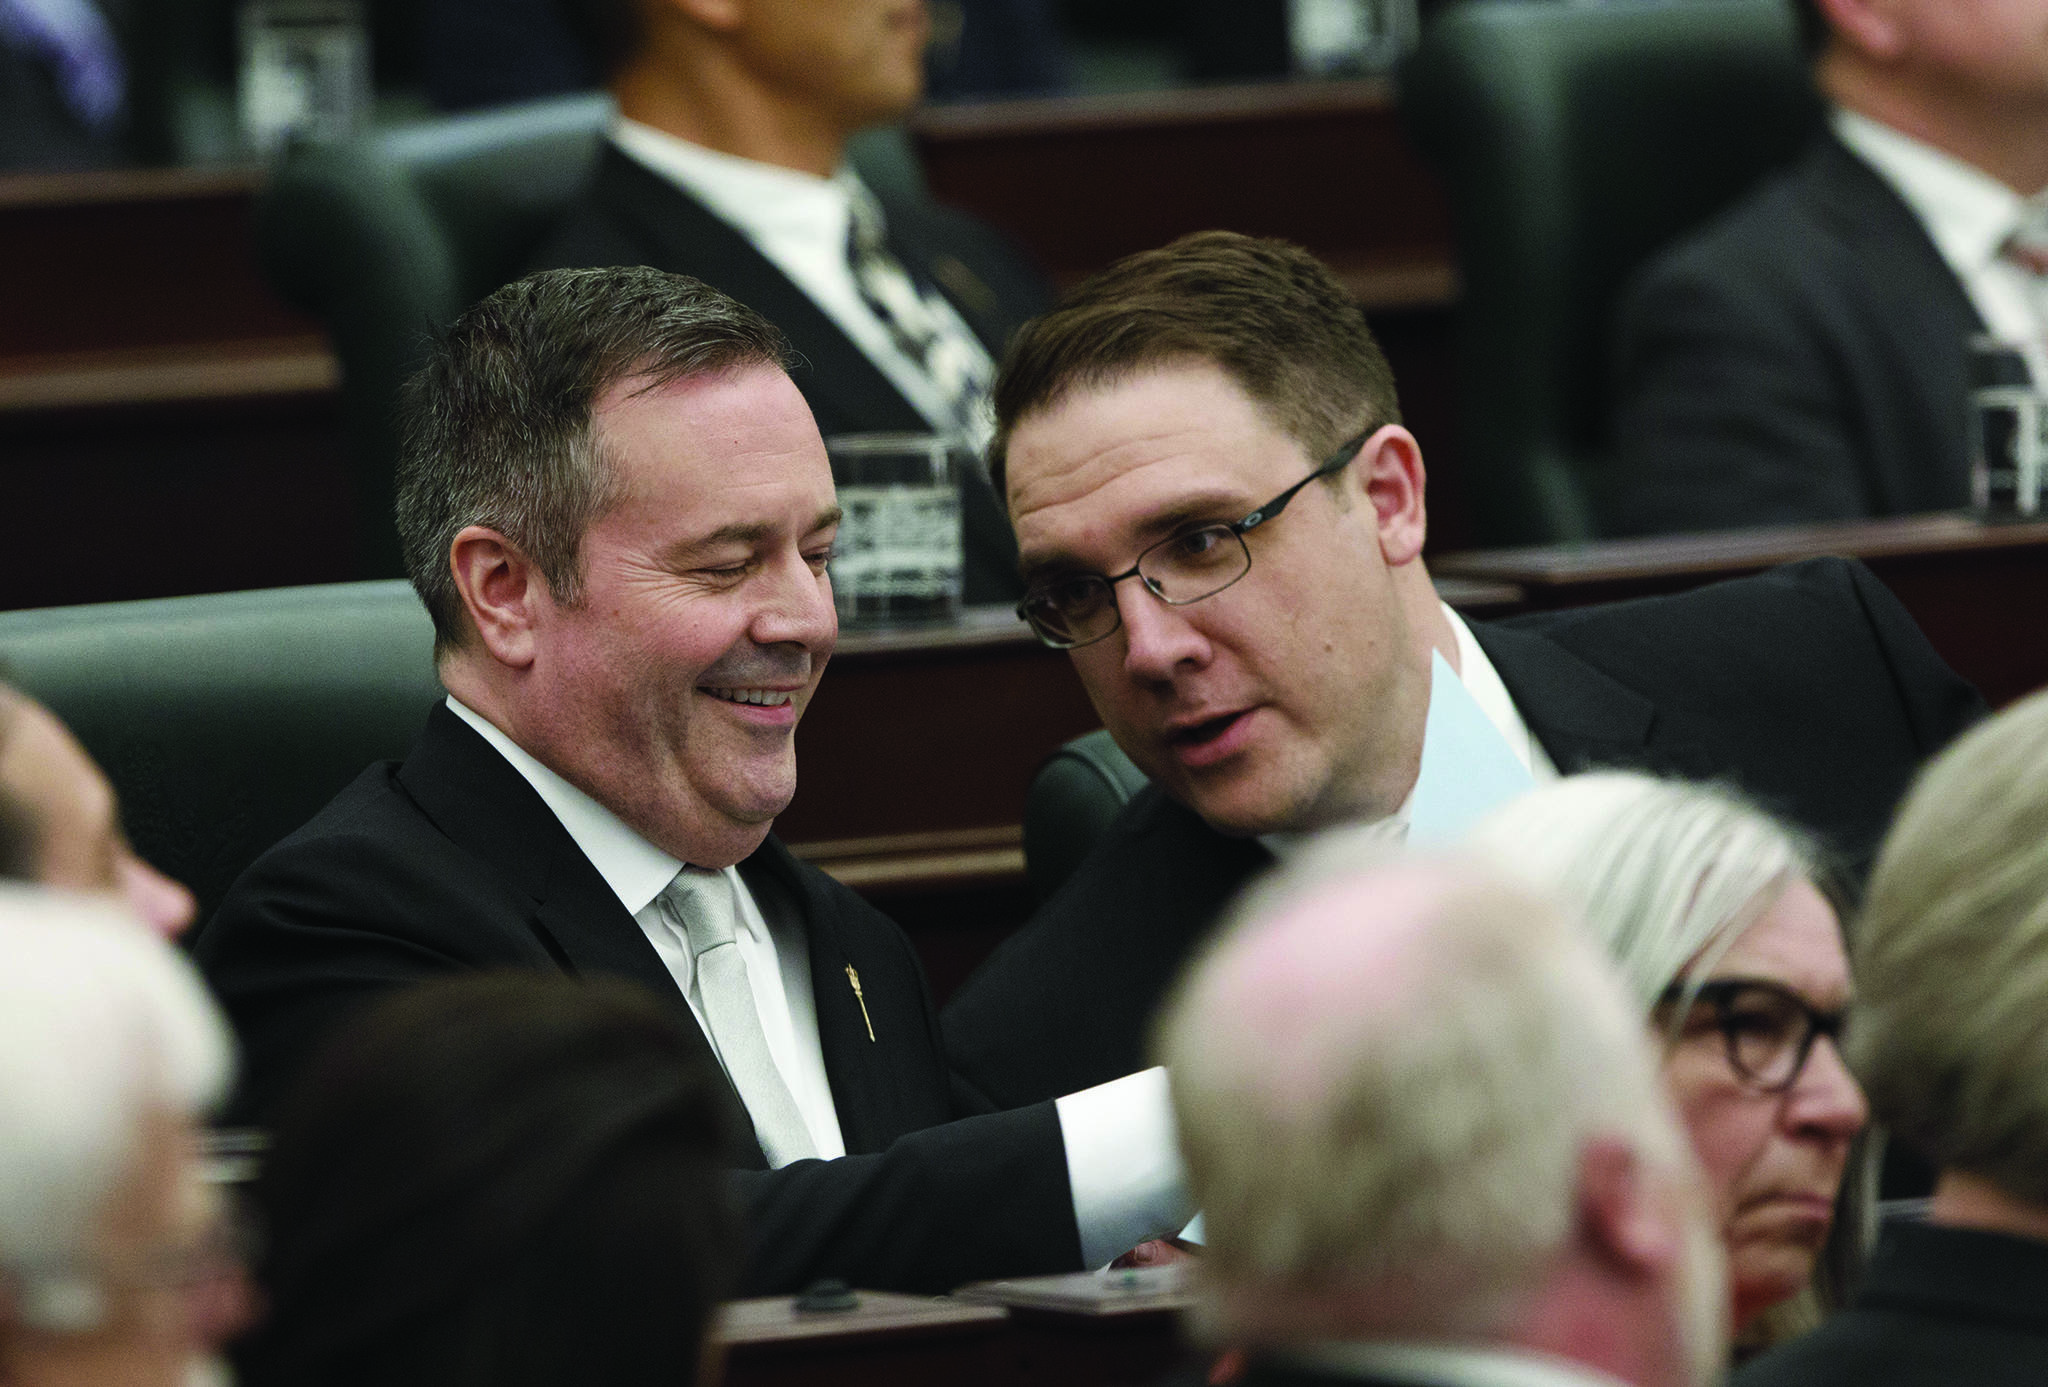 Alberta Premier Jason Kenney and Jason Nixon, Minister of Environment and Parks chat before the speech from the throne is delivered in Edmonton on Tuesday May 21, 2019. THE CANADIAN PRESS/Jason Franson